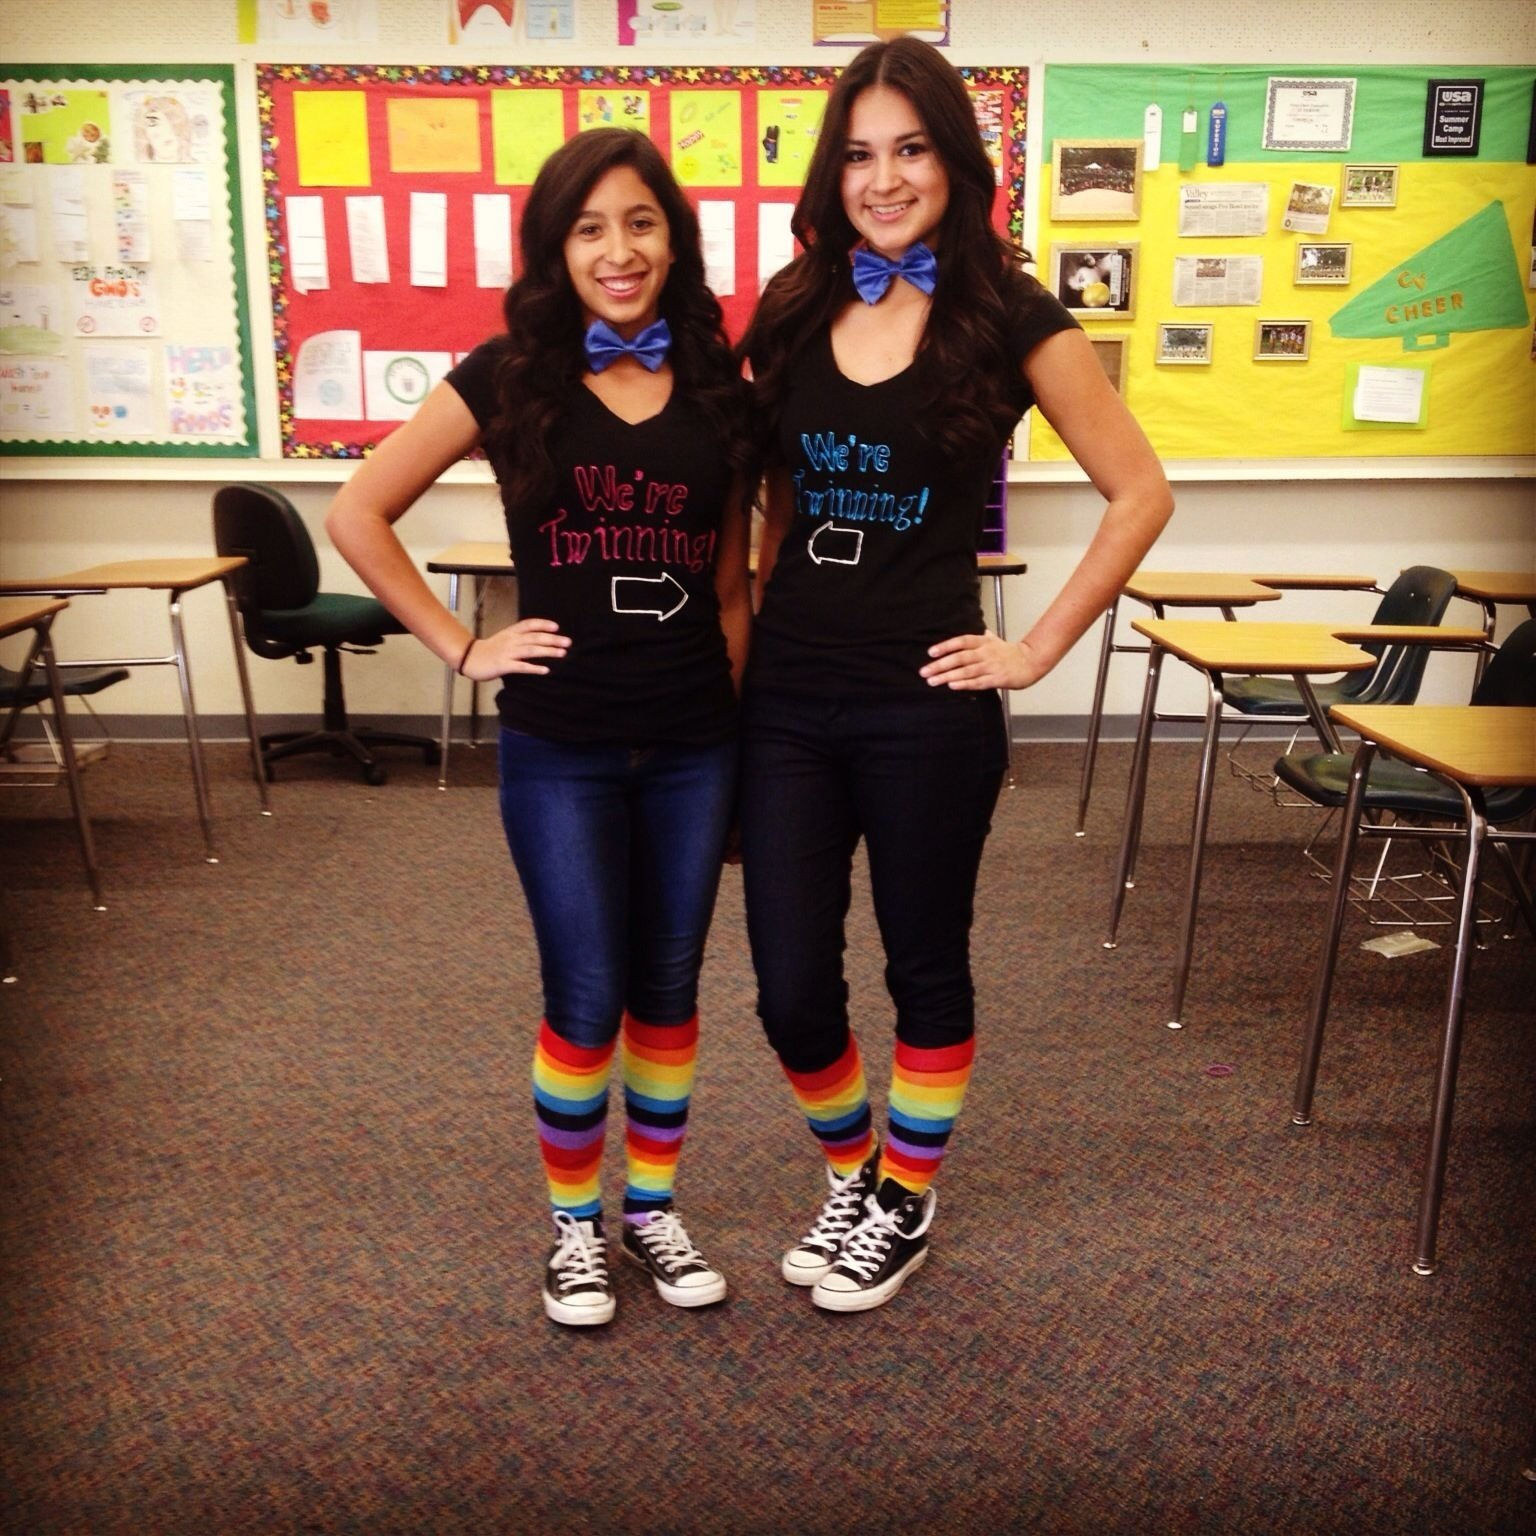 10 Attractive Ideas For Twin Day At School twin day spirit week at school my lifee29da4 pinterest twins 8